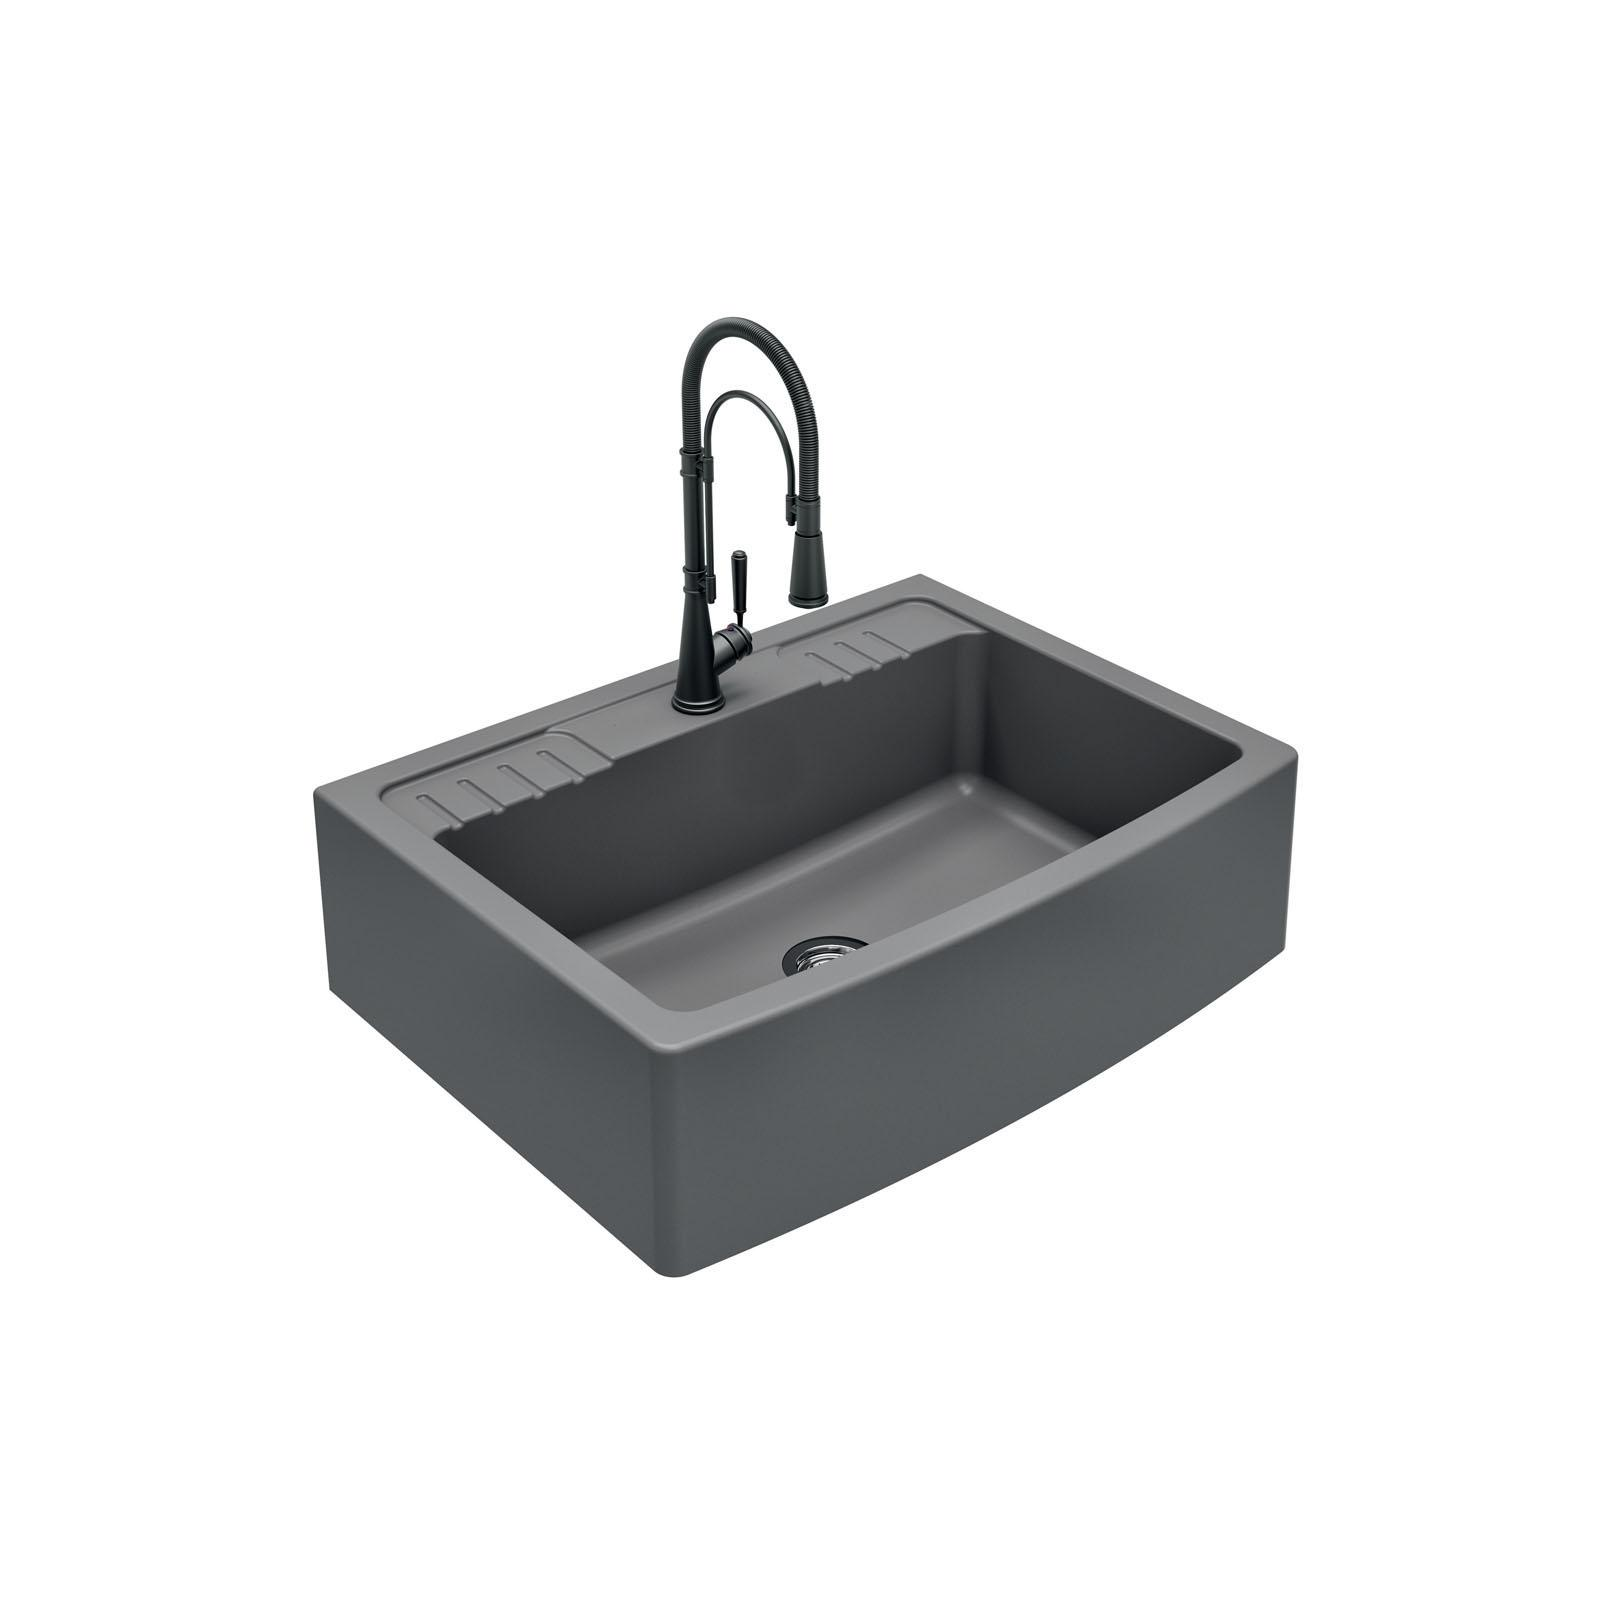 High-quality sink Clotaire IV granit titanium - one bowl - ambience 2